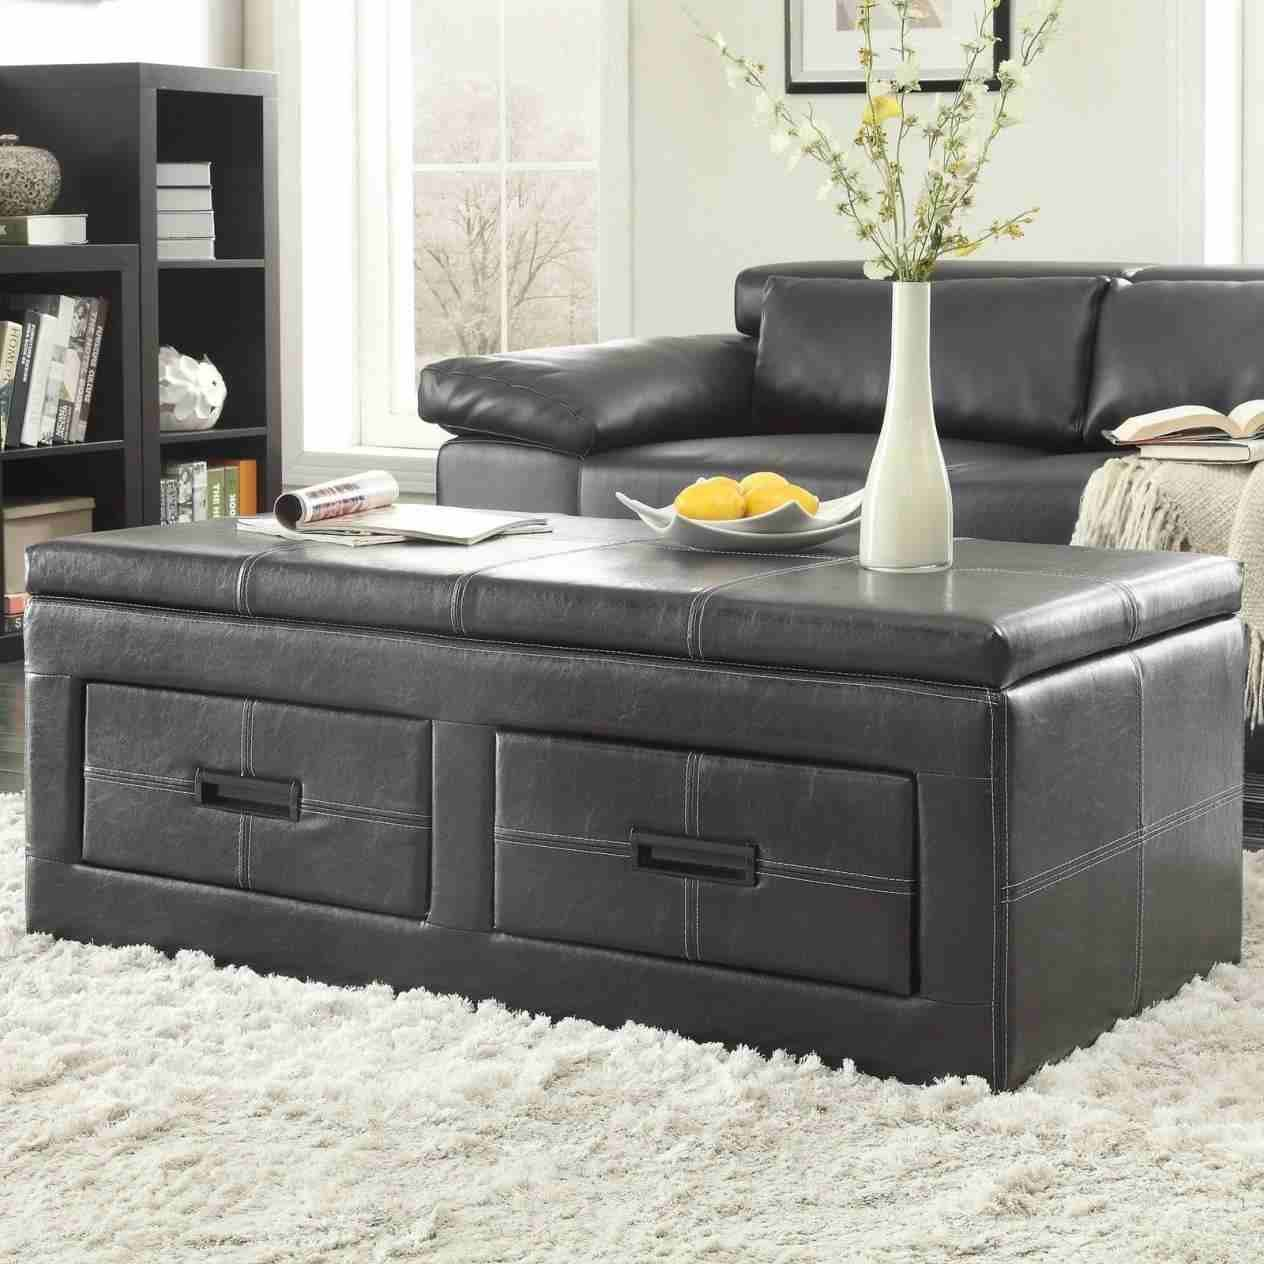 Baine Coffee Table With Lift Top Gallery Of Leather Lift Top